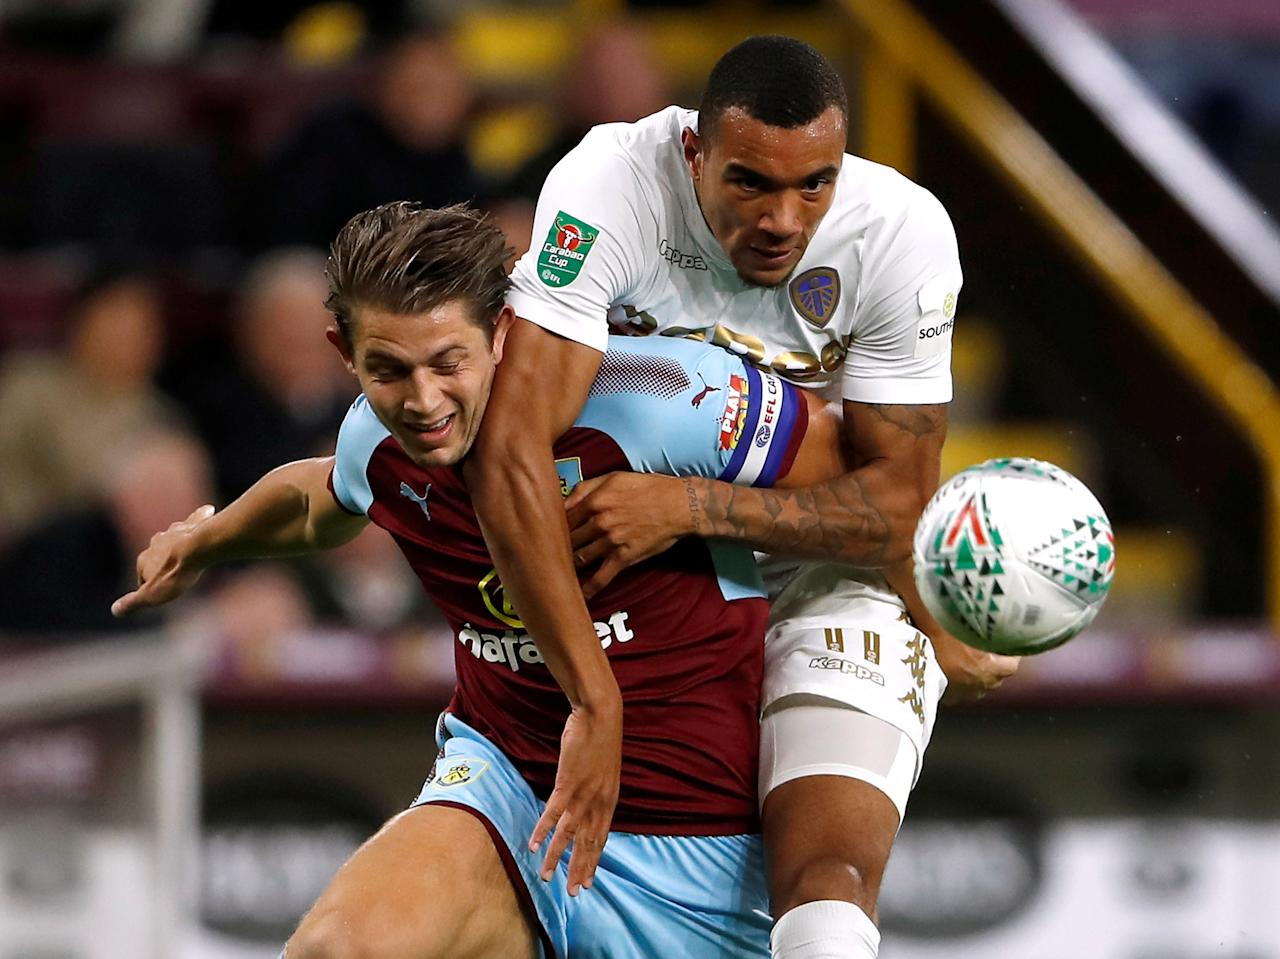 "Soccer Football - Carabao Cup Third Round - Burnley vs Leeds United - Turf Moor, Burnley, Britain - September 19, 2017   Burnley's  James Tarkowski in action with Leeds United's Jay-Rot Grot    Action Images via Reuters/Lee Smith   EDITORIAL USE ONLY. No use with unauthorized audio, video, data, fixture lists, club/league logos or ""live"" services. Online in-match use limited to 75 images, no video emulation. No use in betting, games or single club/league/player publications. Please contact your account representative for further details.     TPX IMAGES OF THE DAY"